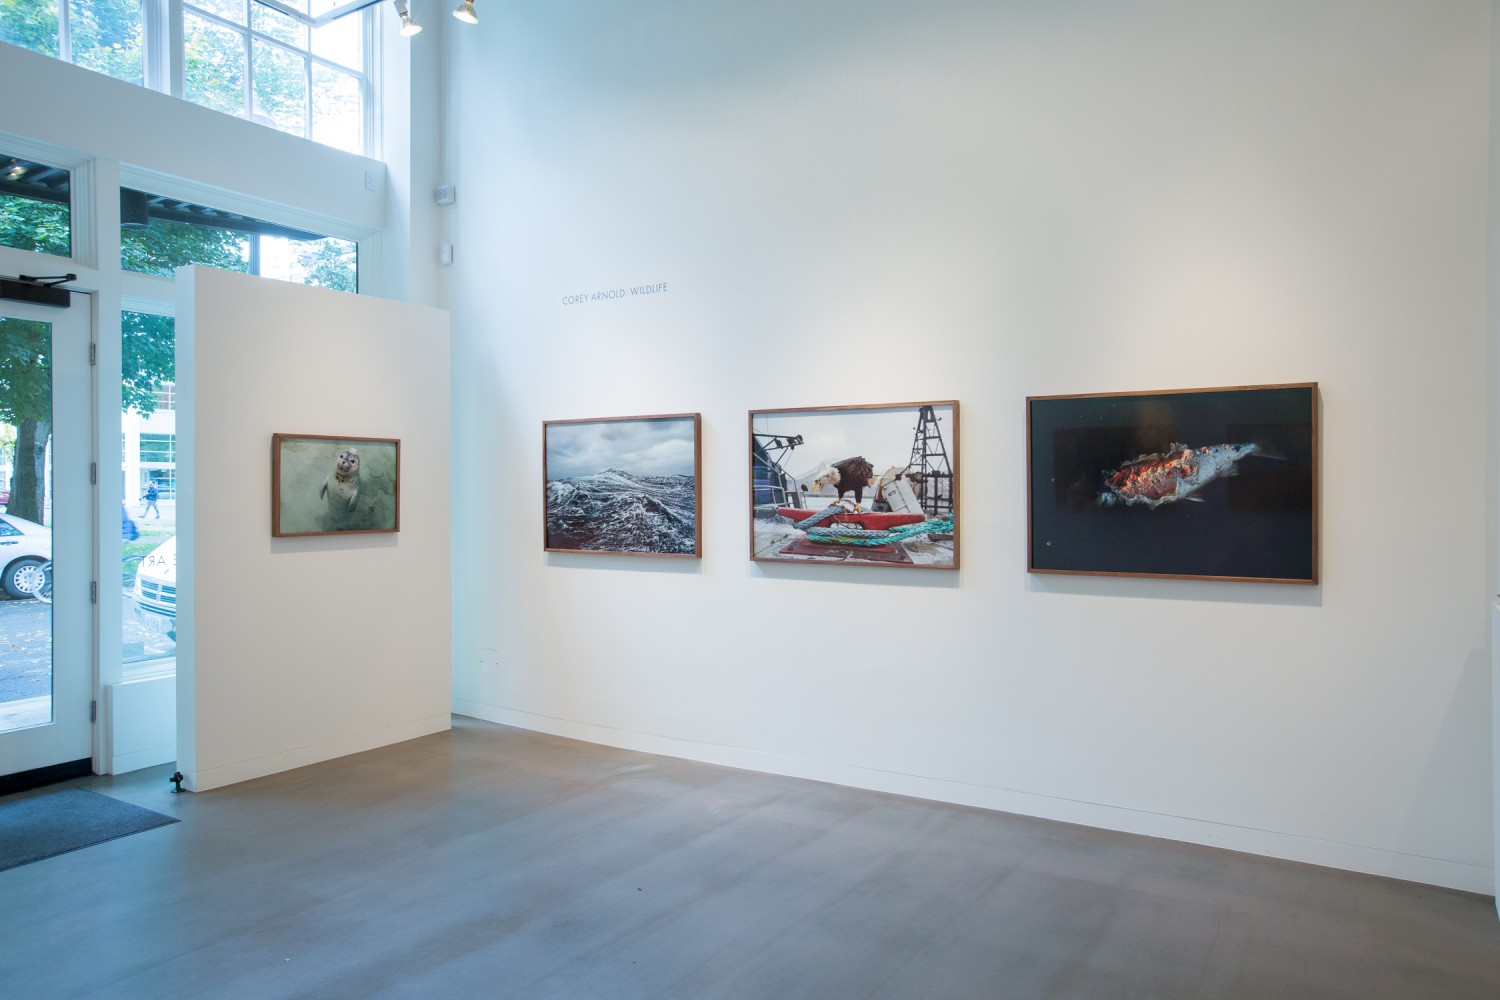 Wildlife exhibition at Charles Hartman Fine Art. Photographs by Corey Arnold